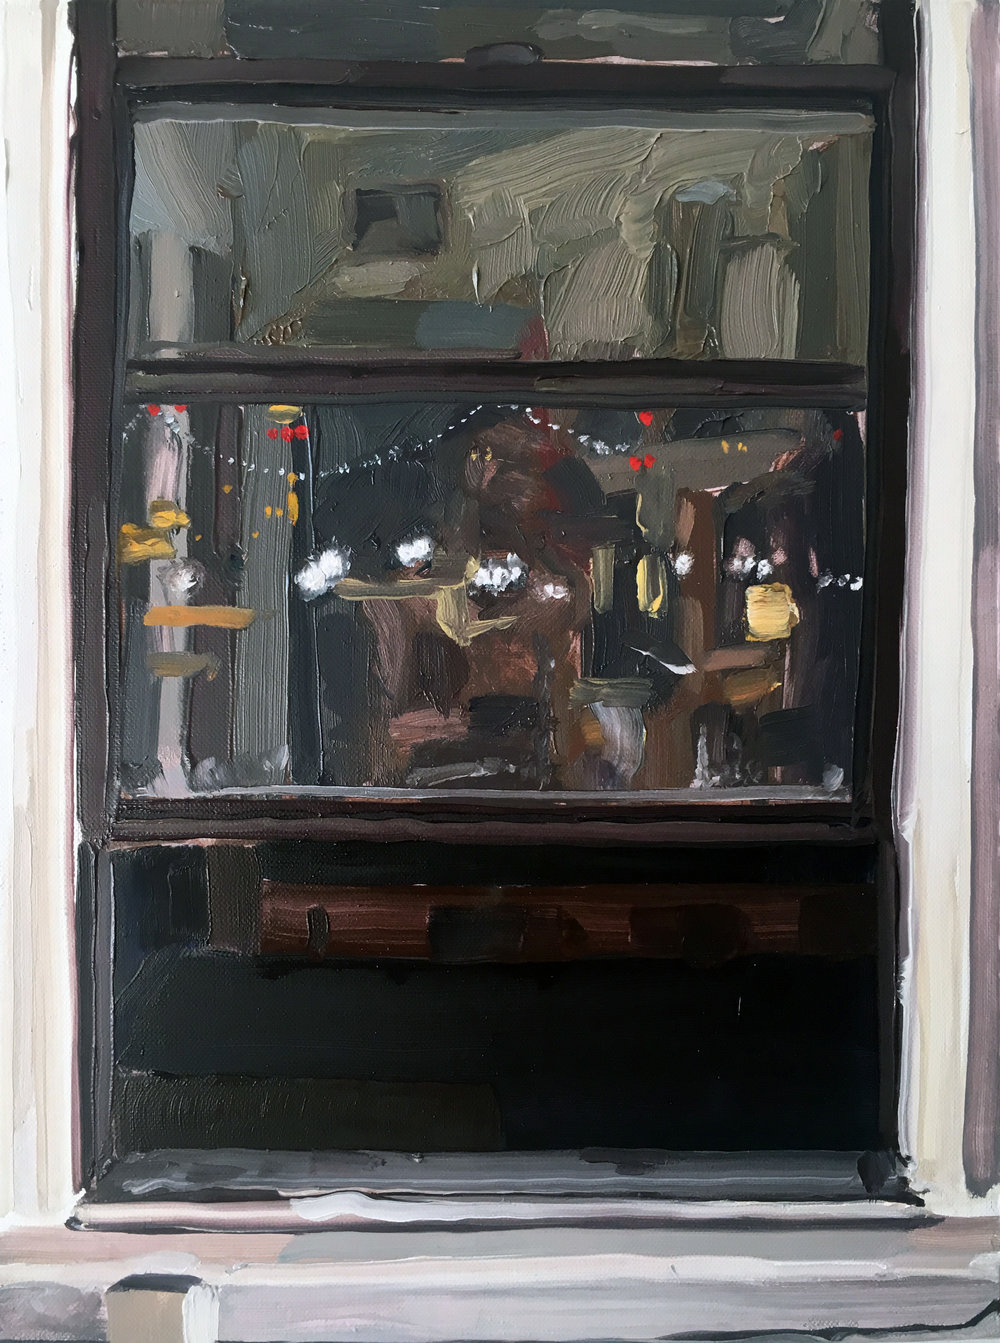 Night Window (6/30-7/1), 2017, oil on linen, 12 x 9 inches